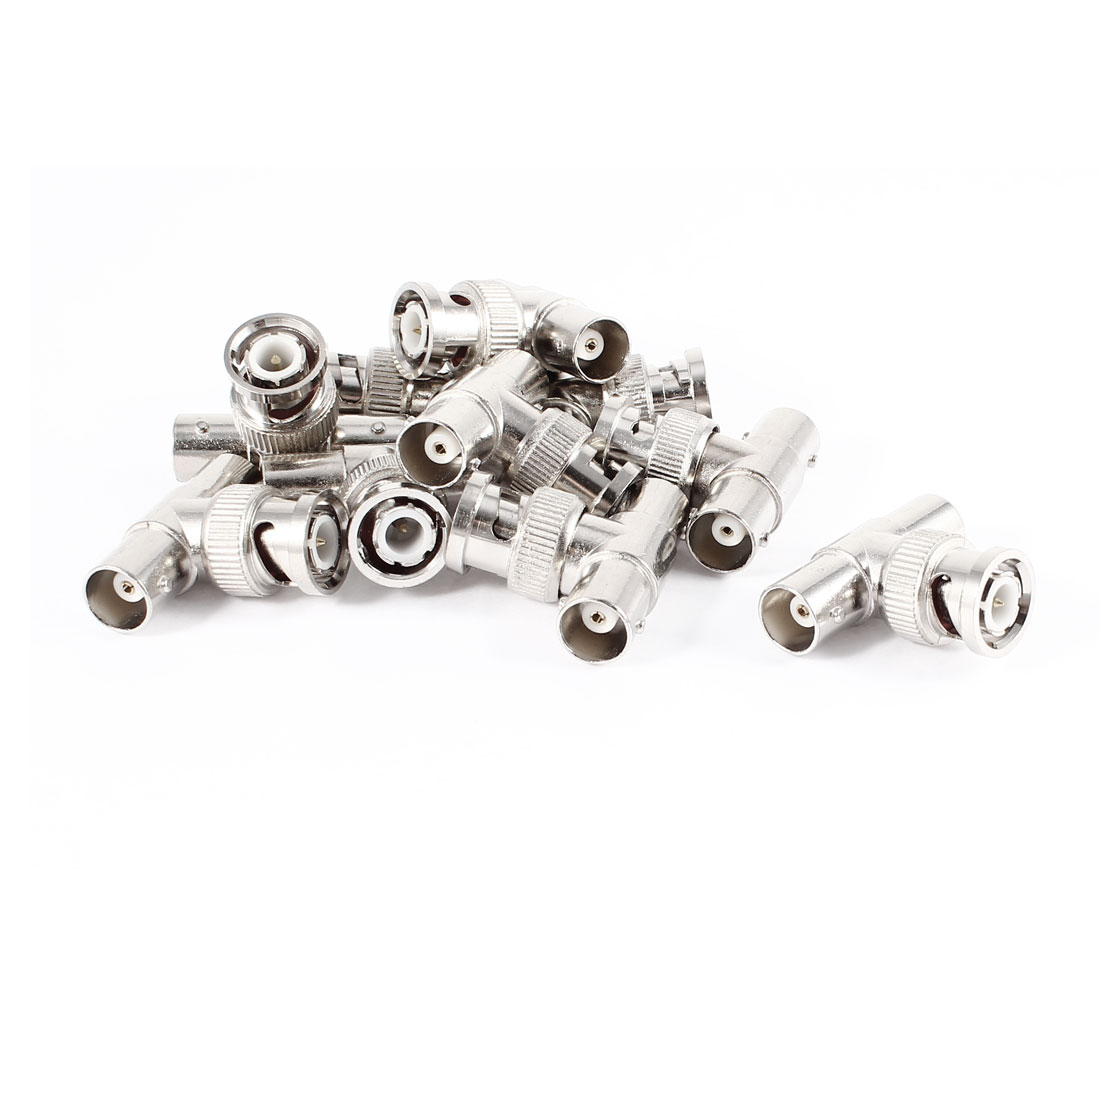 10 Pcs BNC Male Plug to Dual BNC Female Jack T Shape Adapter Connector Silver Tone